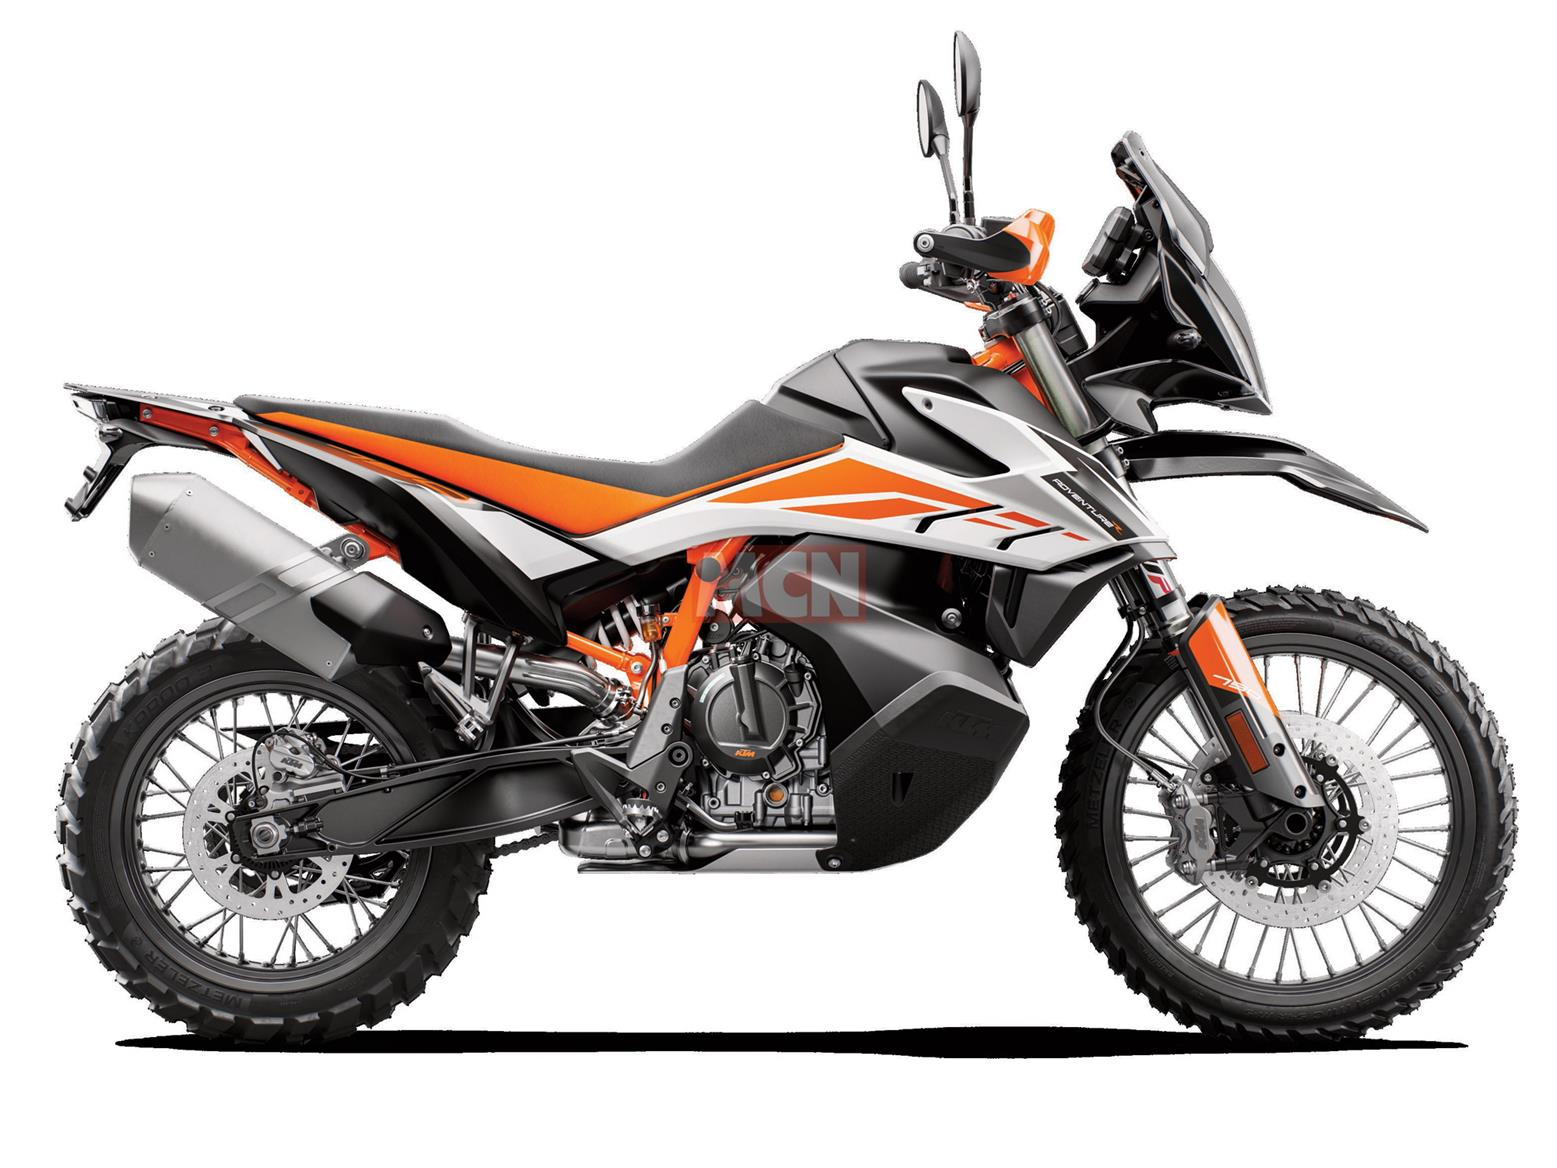 KTM 790 Adventure R side-on view